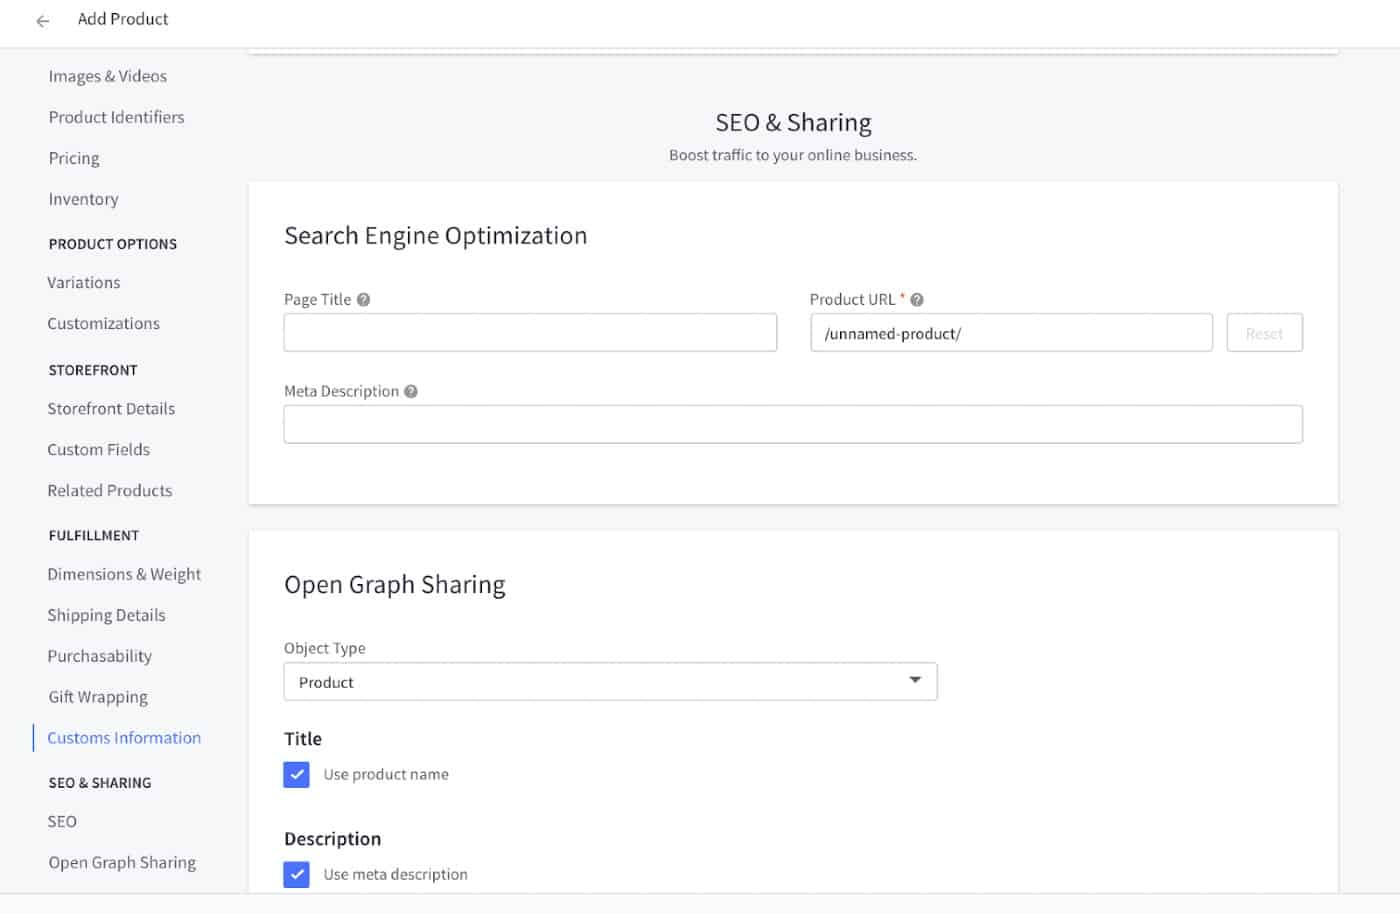 Screenshot of Ability to Set Up and Implement SEO